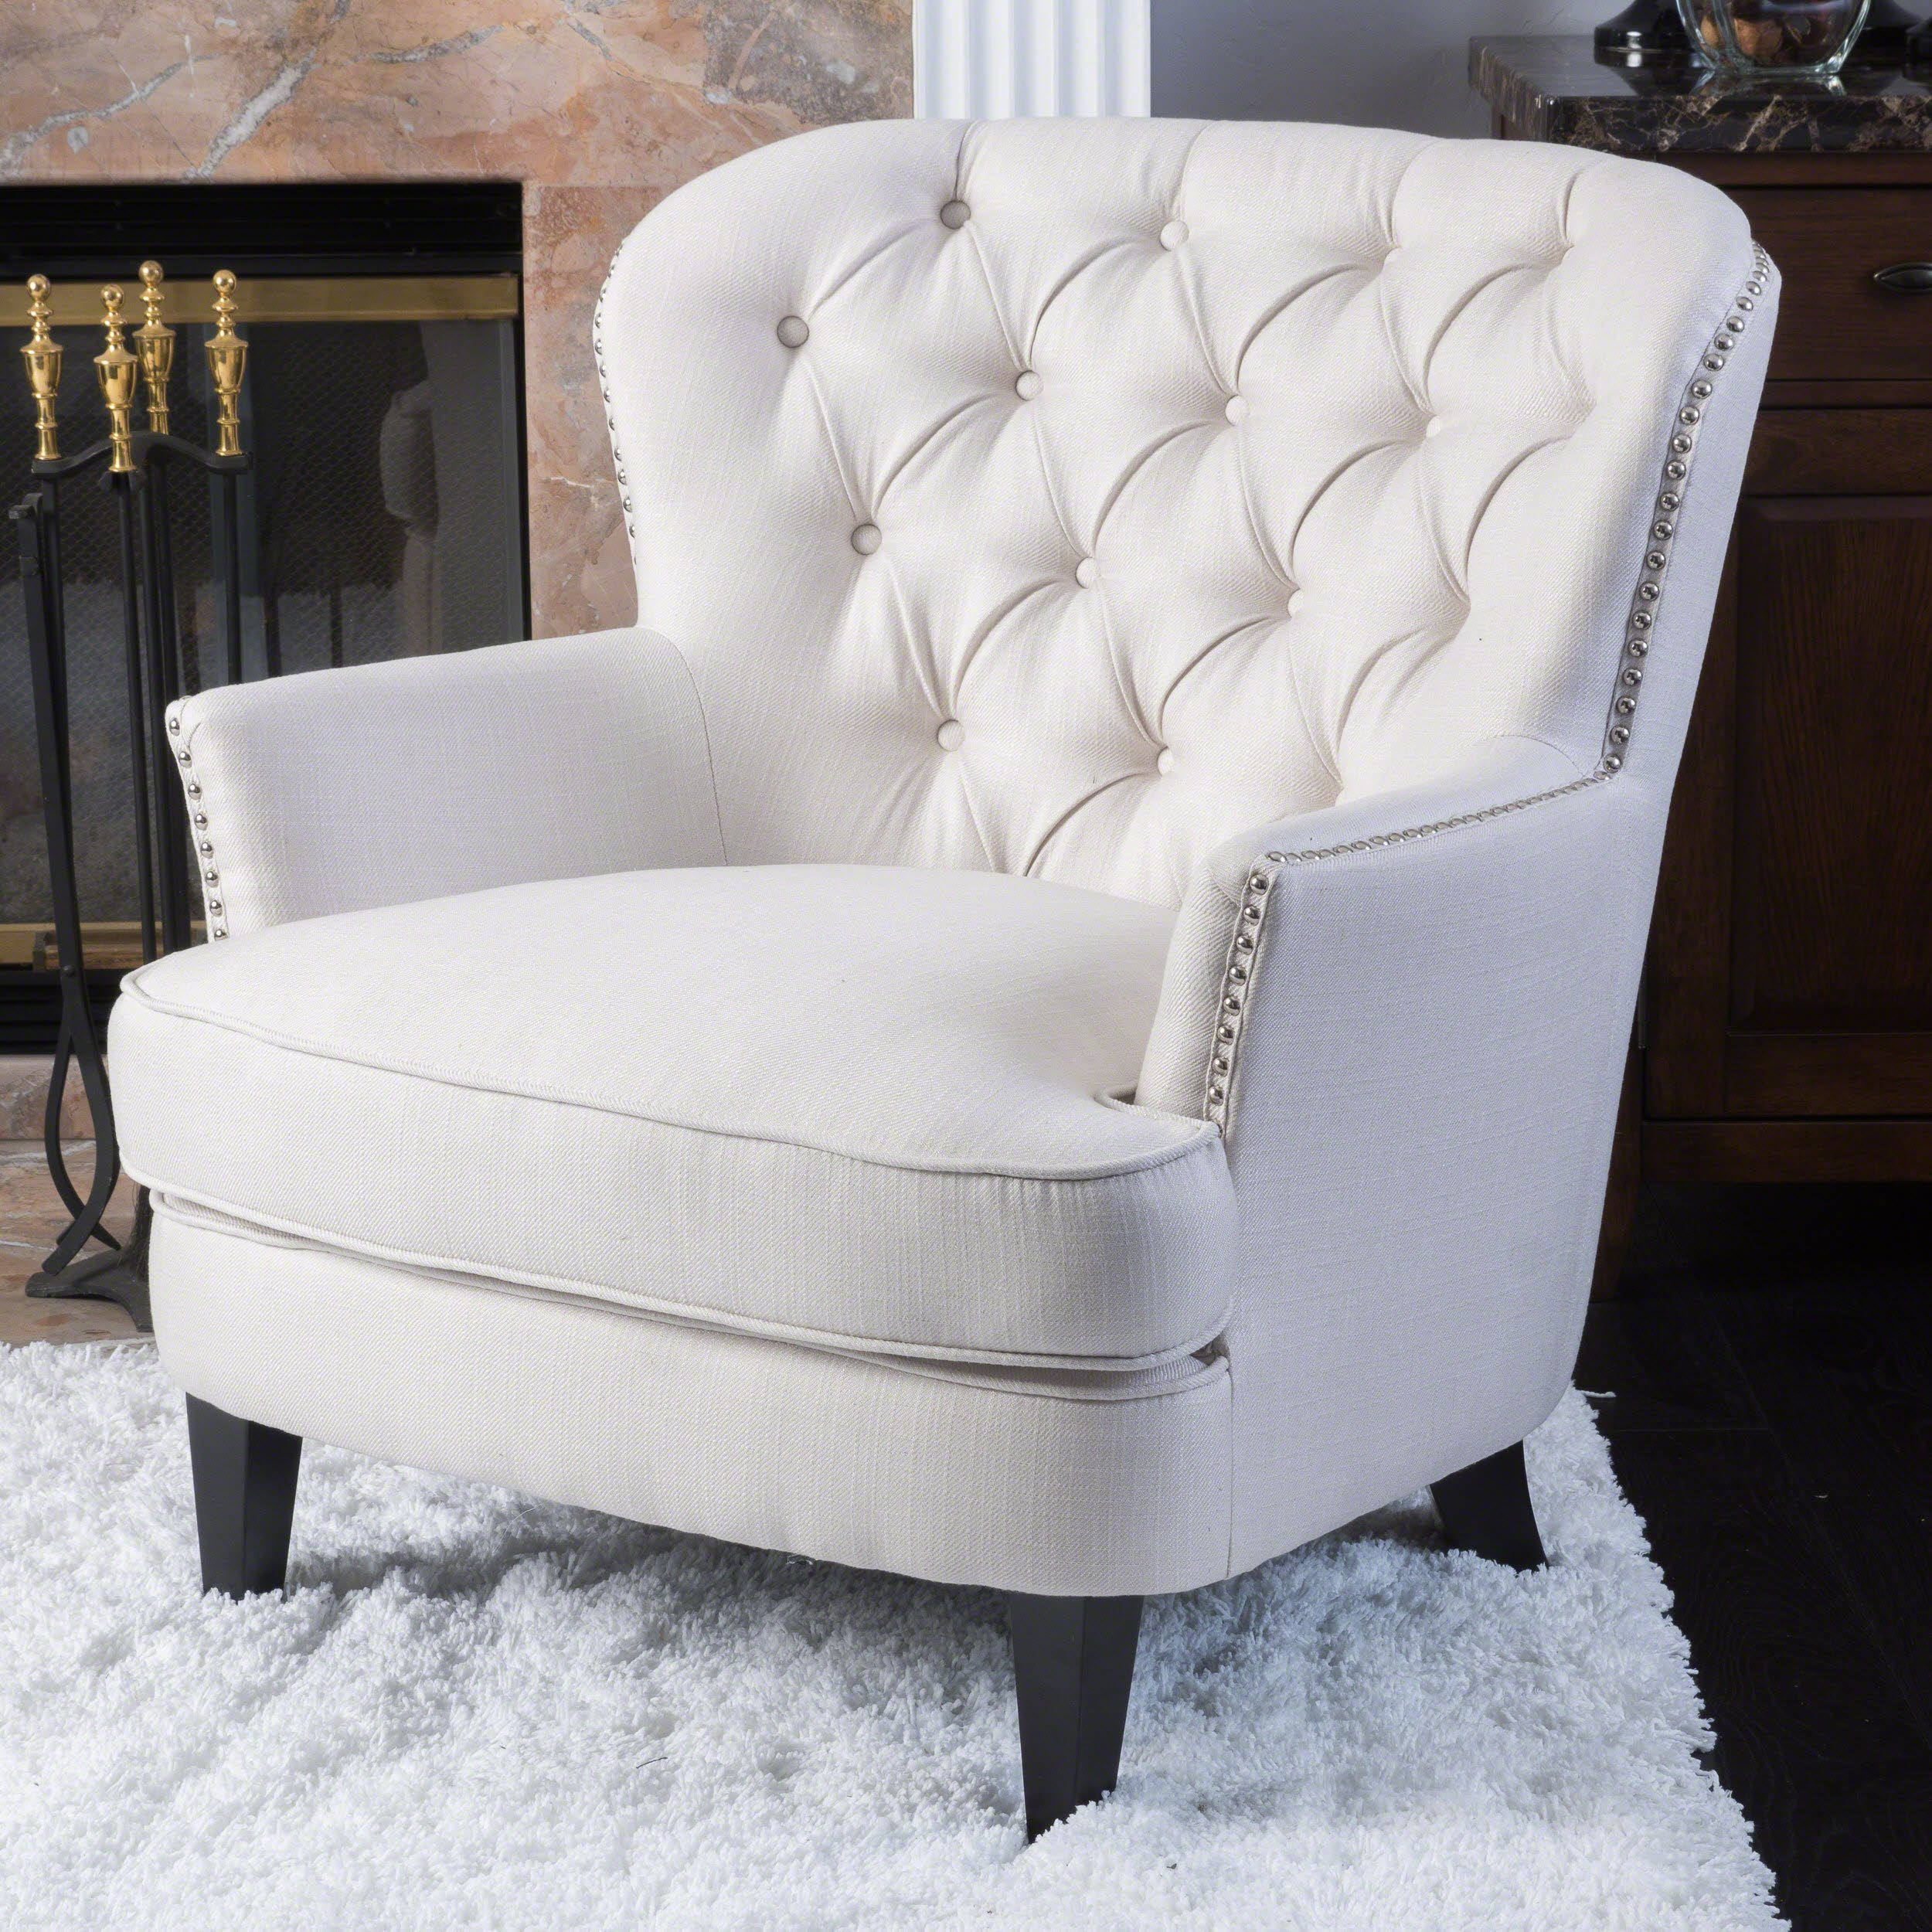 Christopher Knight Home Ckh Arm Chair, Ivory by Christopher Knight Home